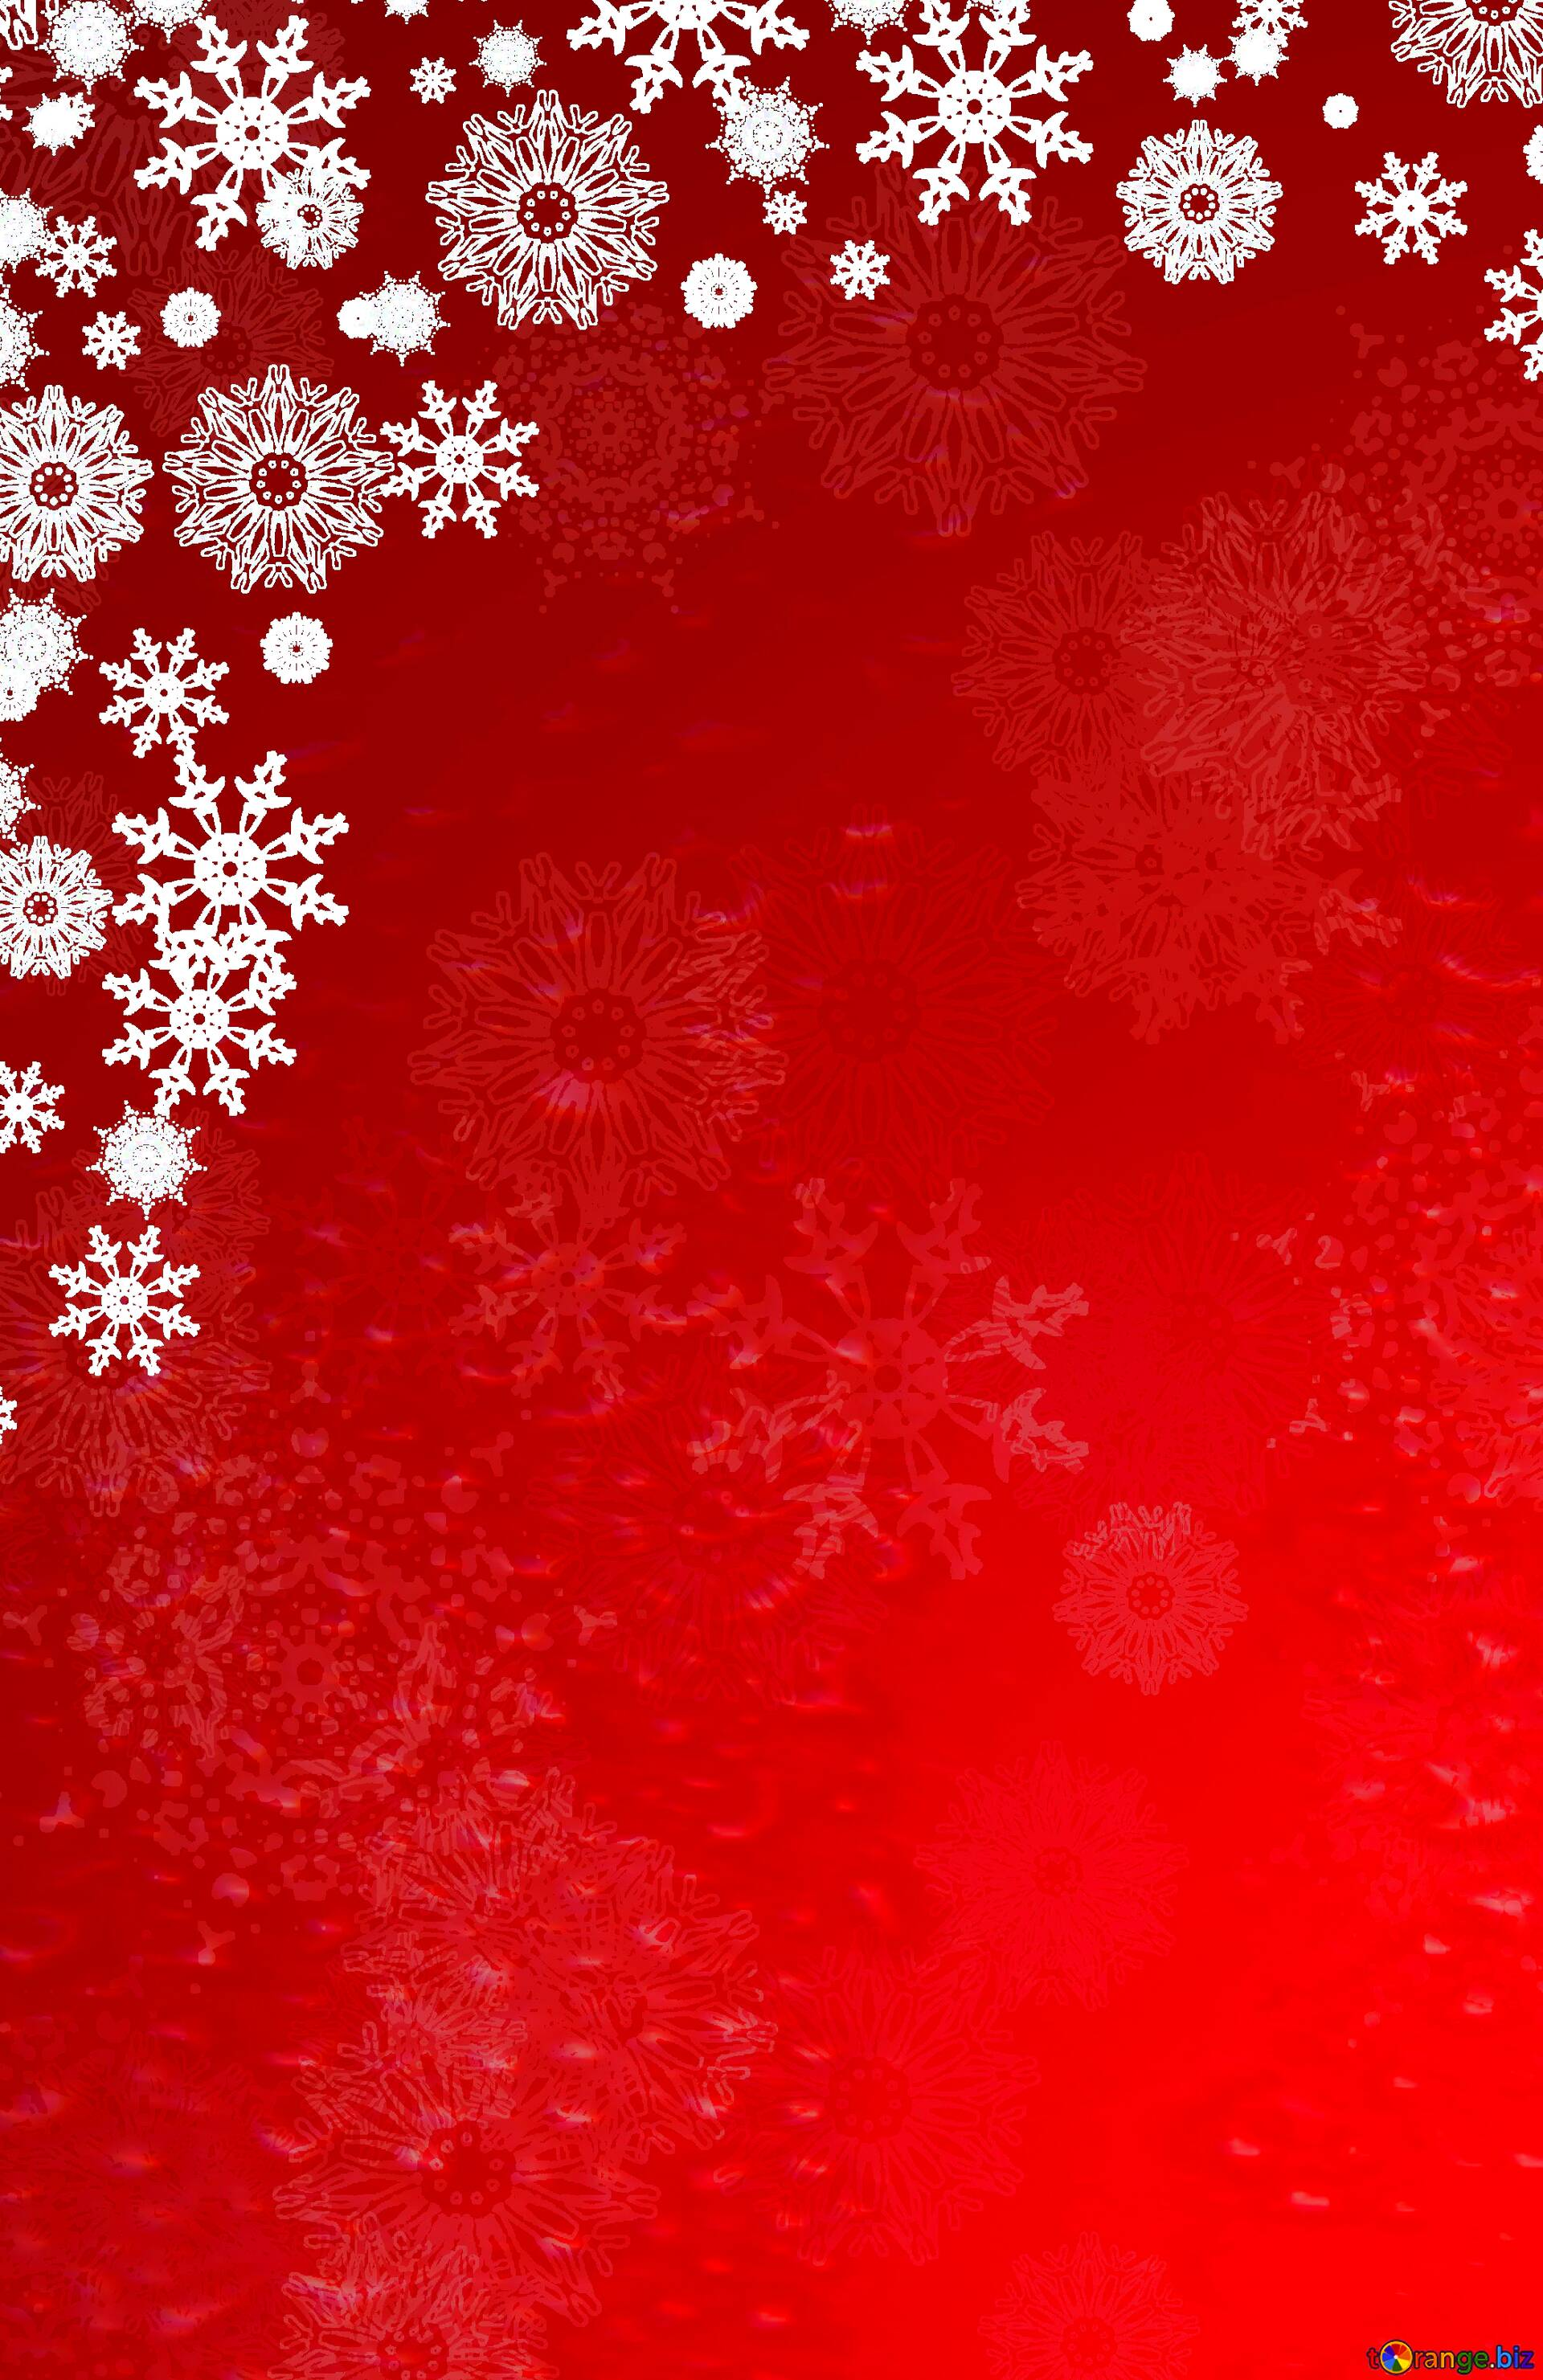 download free picture red christmas card background on cc by license free image stock torange biz fx 137566 download free picture red christmas card background on cc by license free image stock torange biz fx 137566